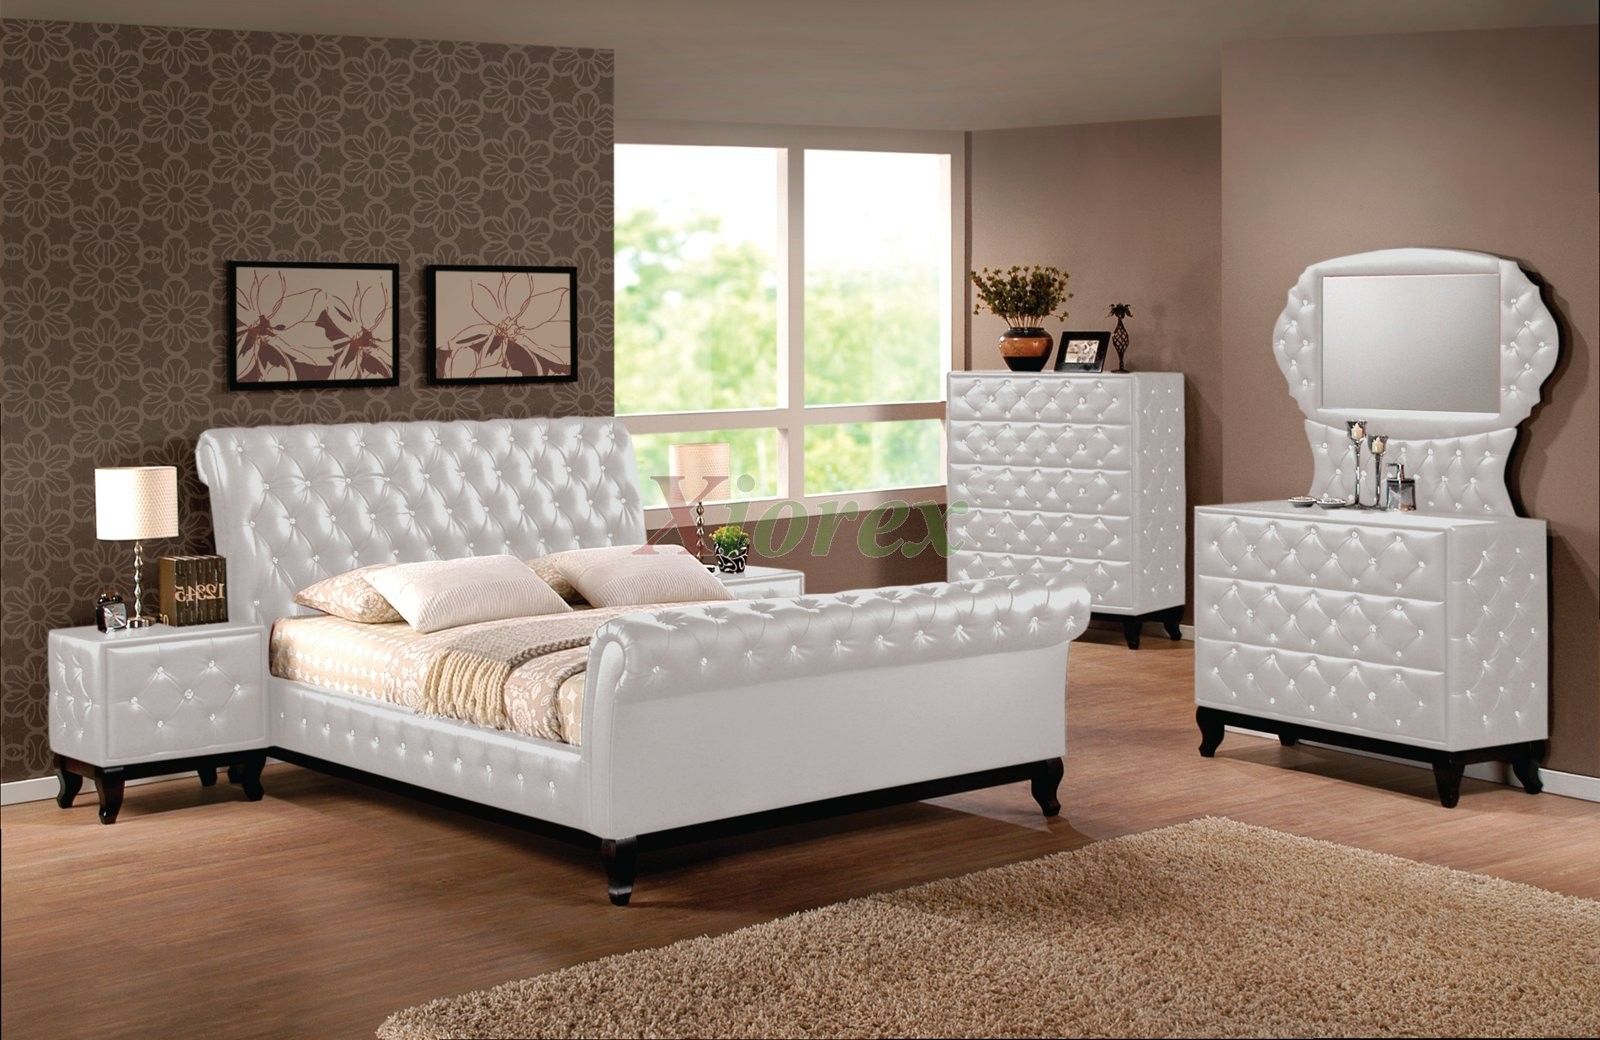 Bed And Furniture Sets New in House Designer bedroom